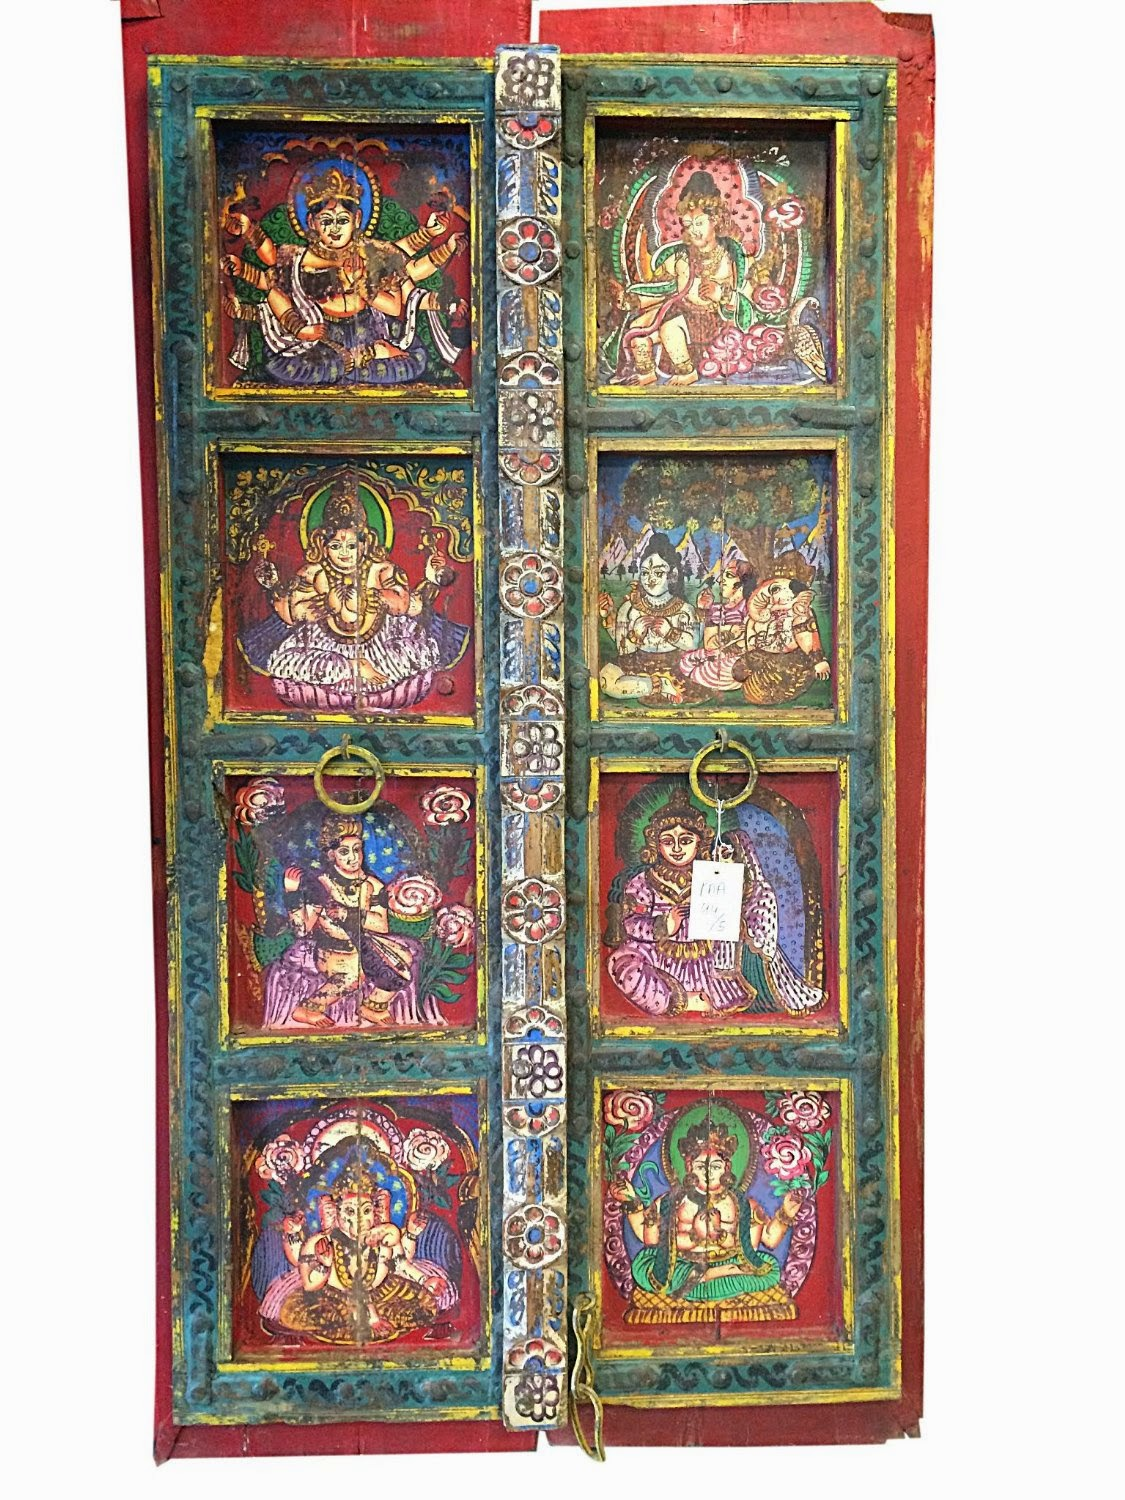 Indian Antique Furniture #furniture #vintage #rustic #indian #jaipur #panel  #door #cabinet #wooden